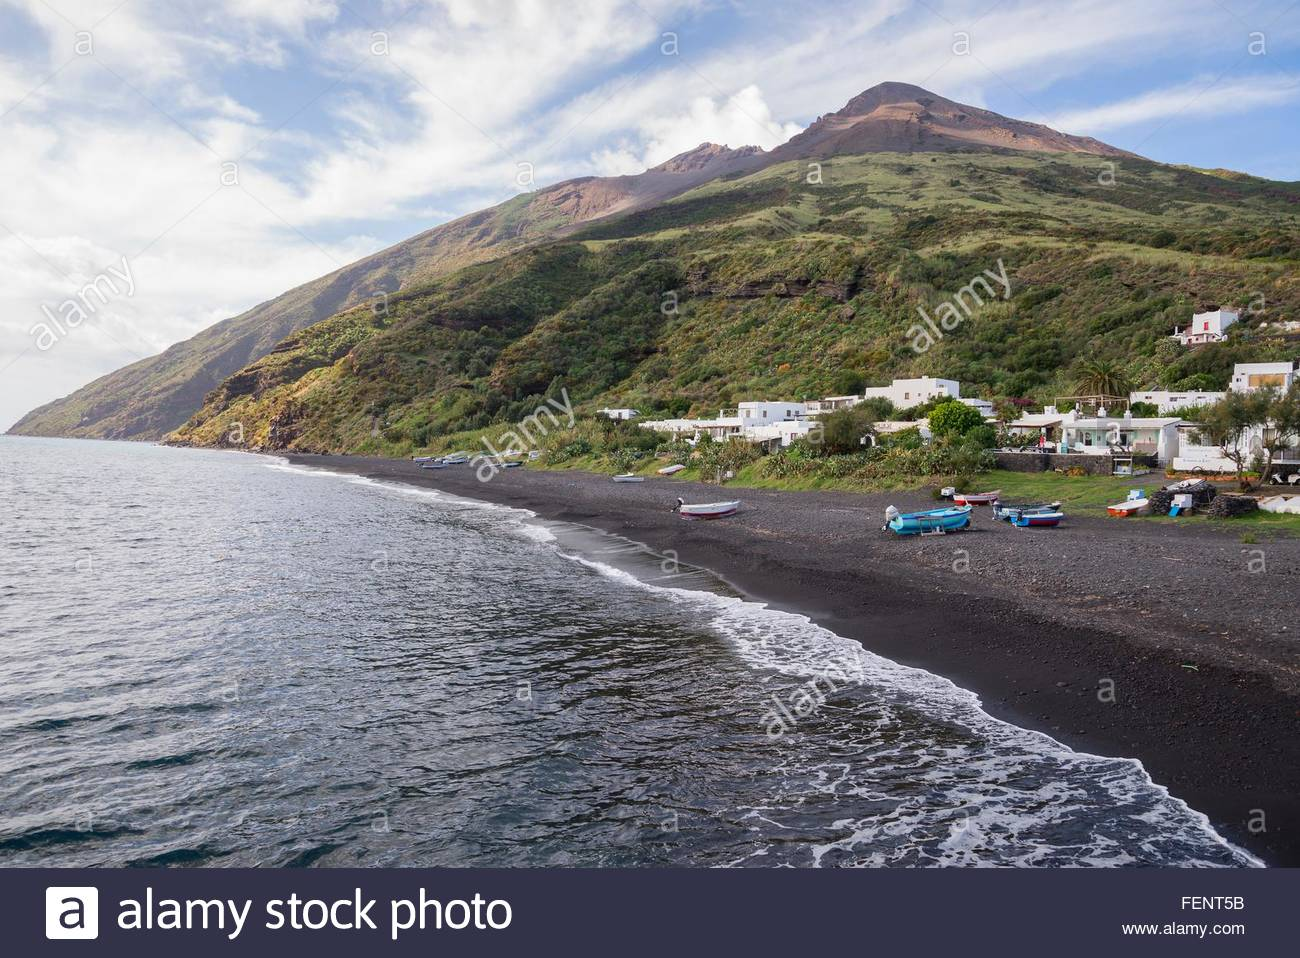 Coast and black sand of beach Stromboli, Aeolian Islands, Sicily, Italy - Stock Image